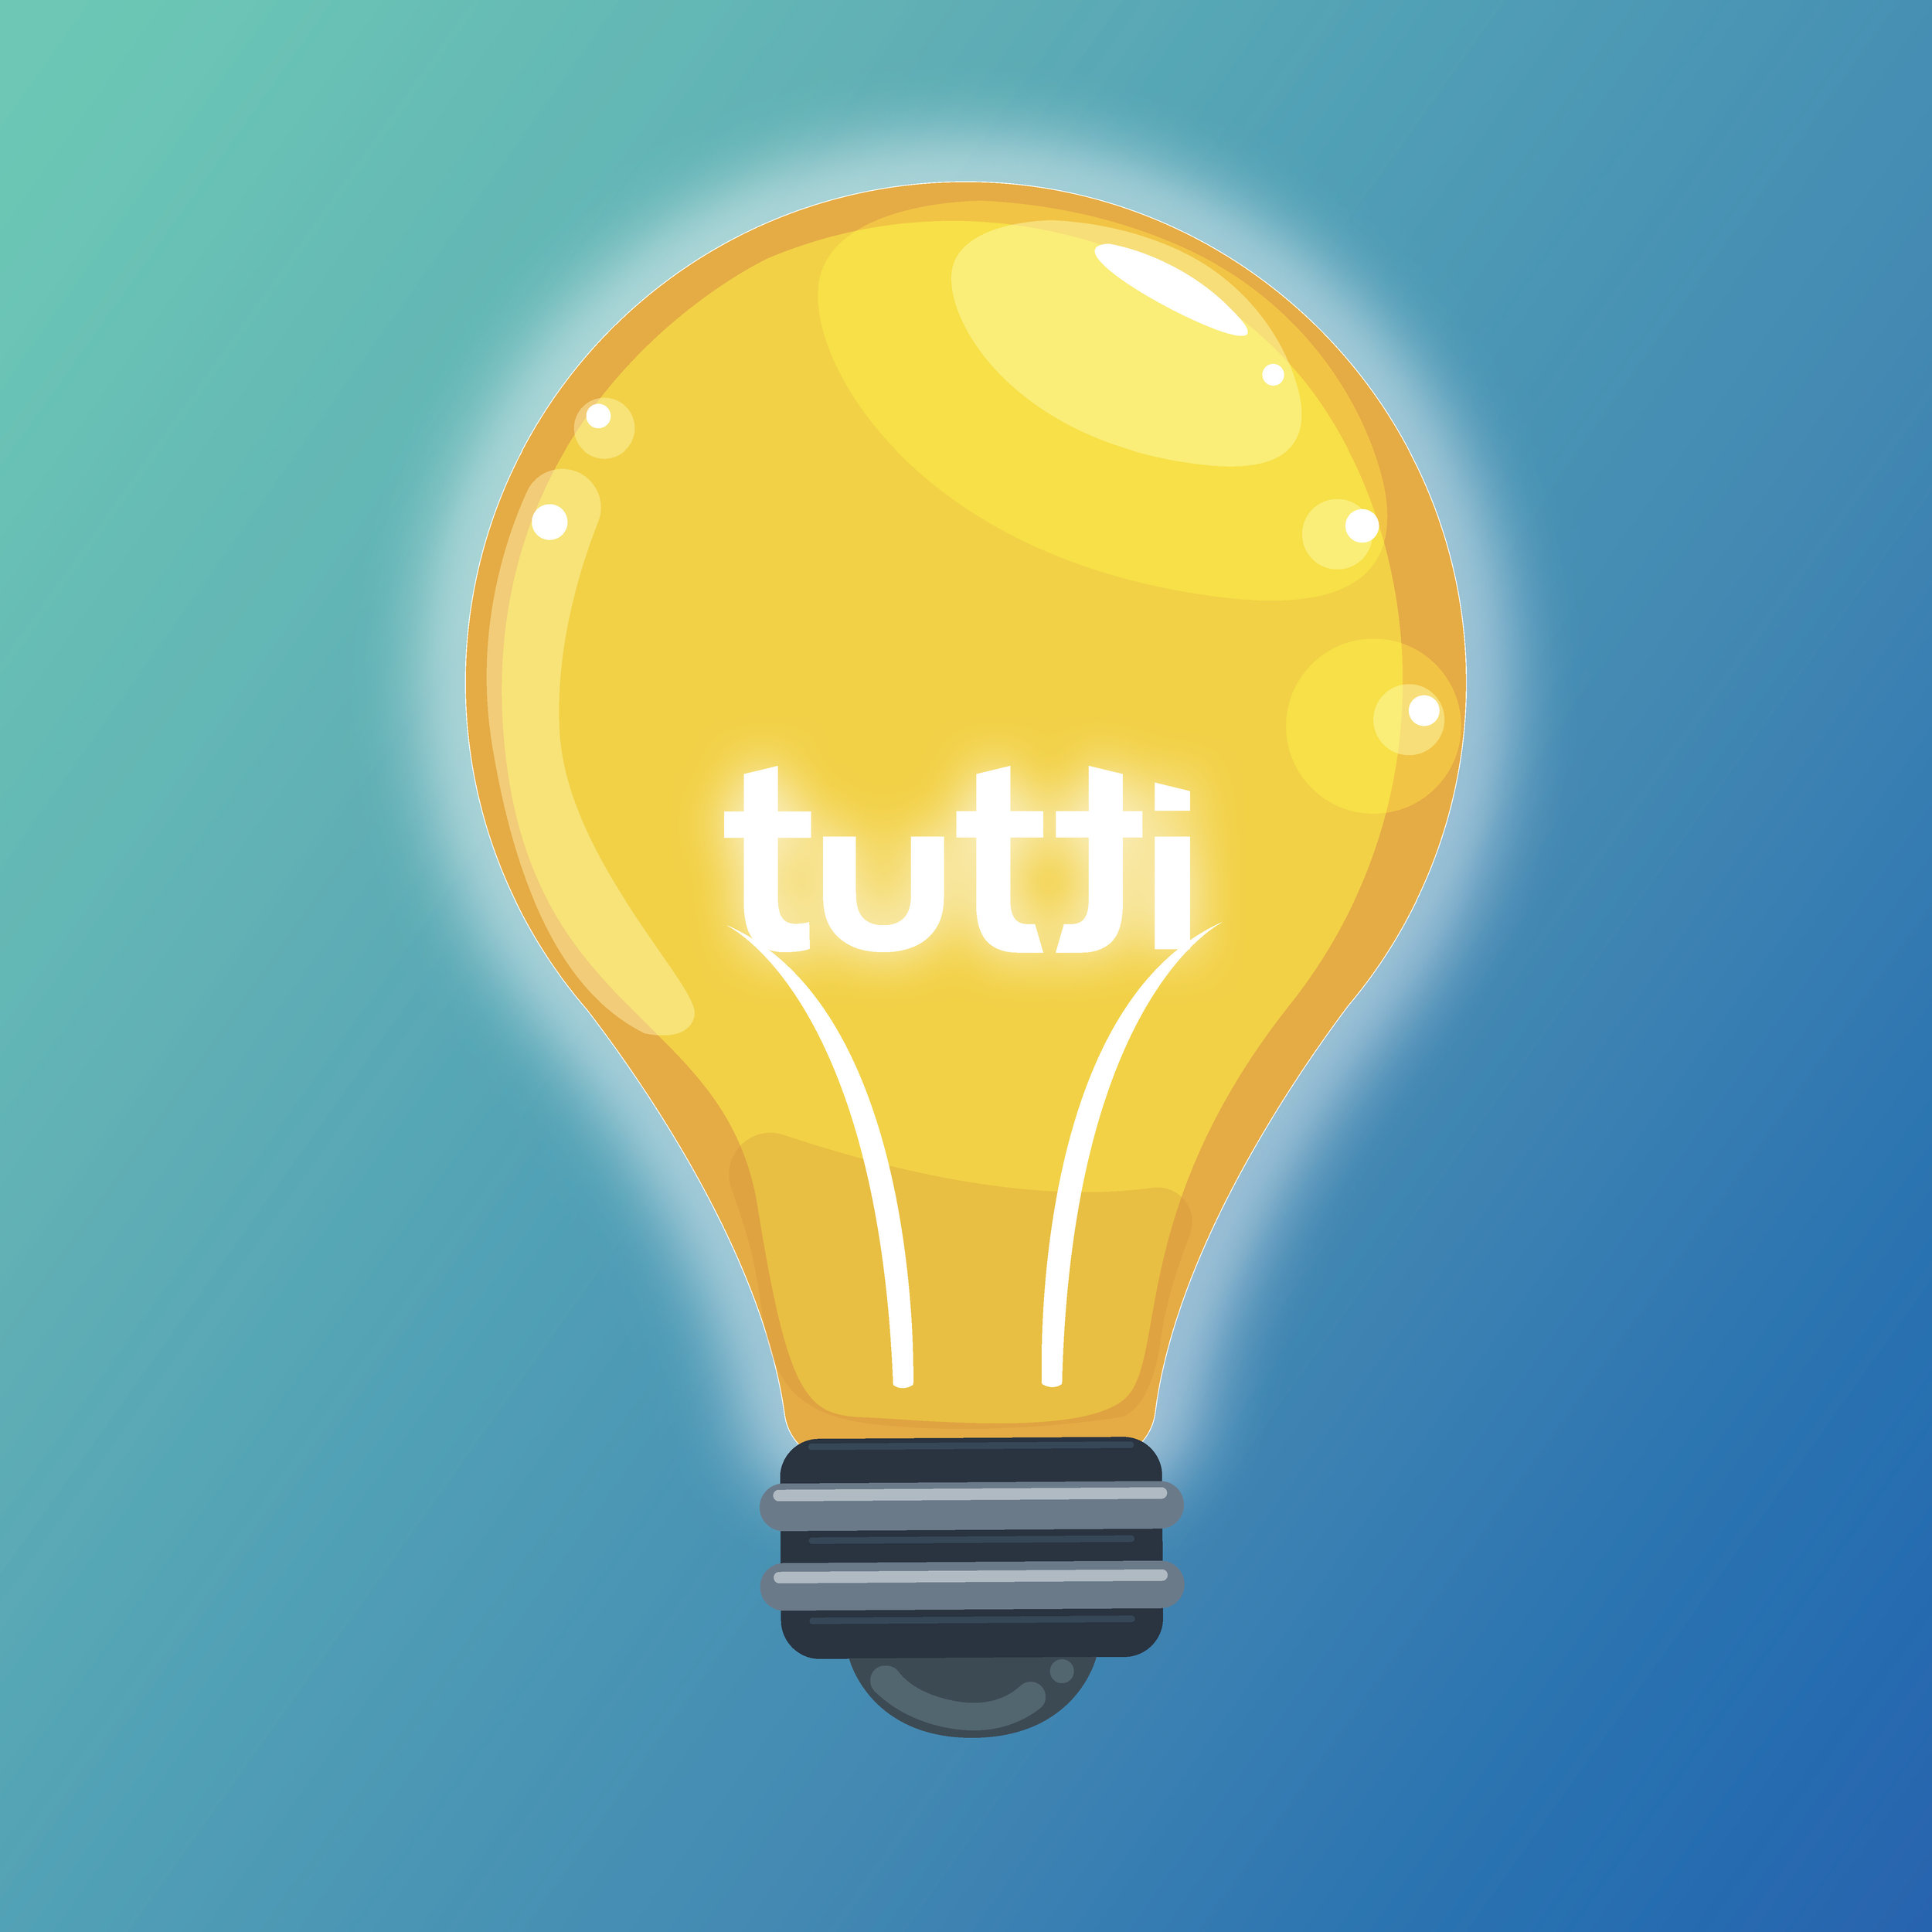 Created something in a Tutti space? - Share your project with us and we'll add it here, as well as sharing it across social media.Email community@tutti.space